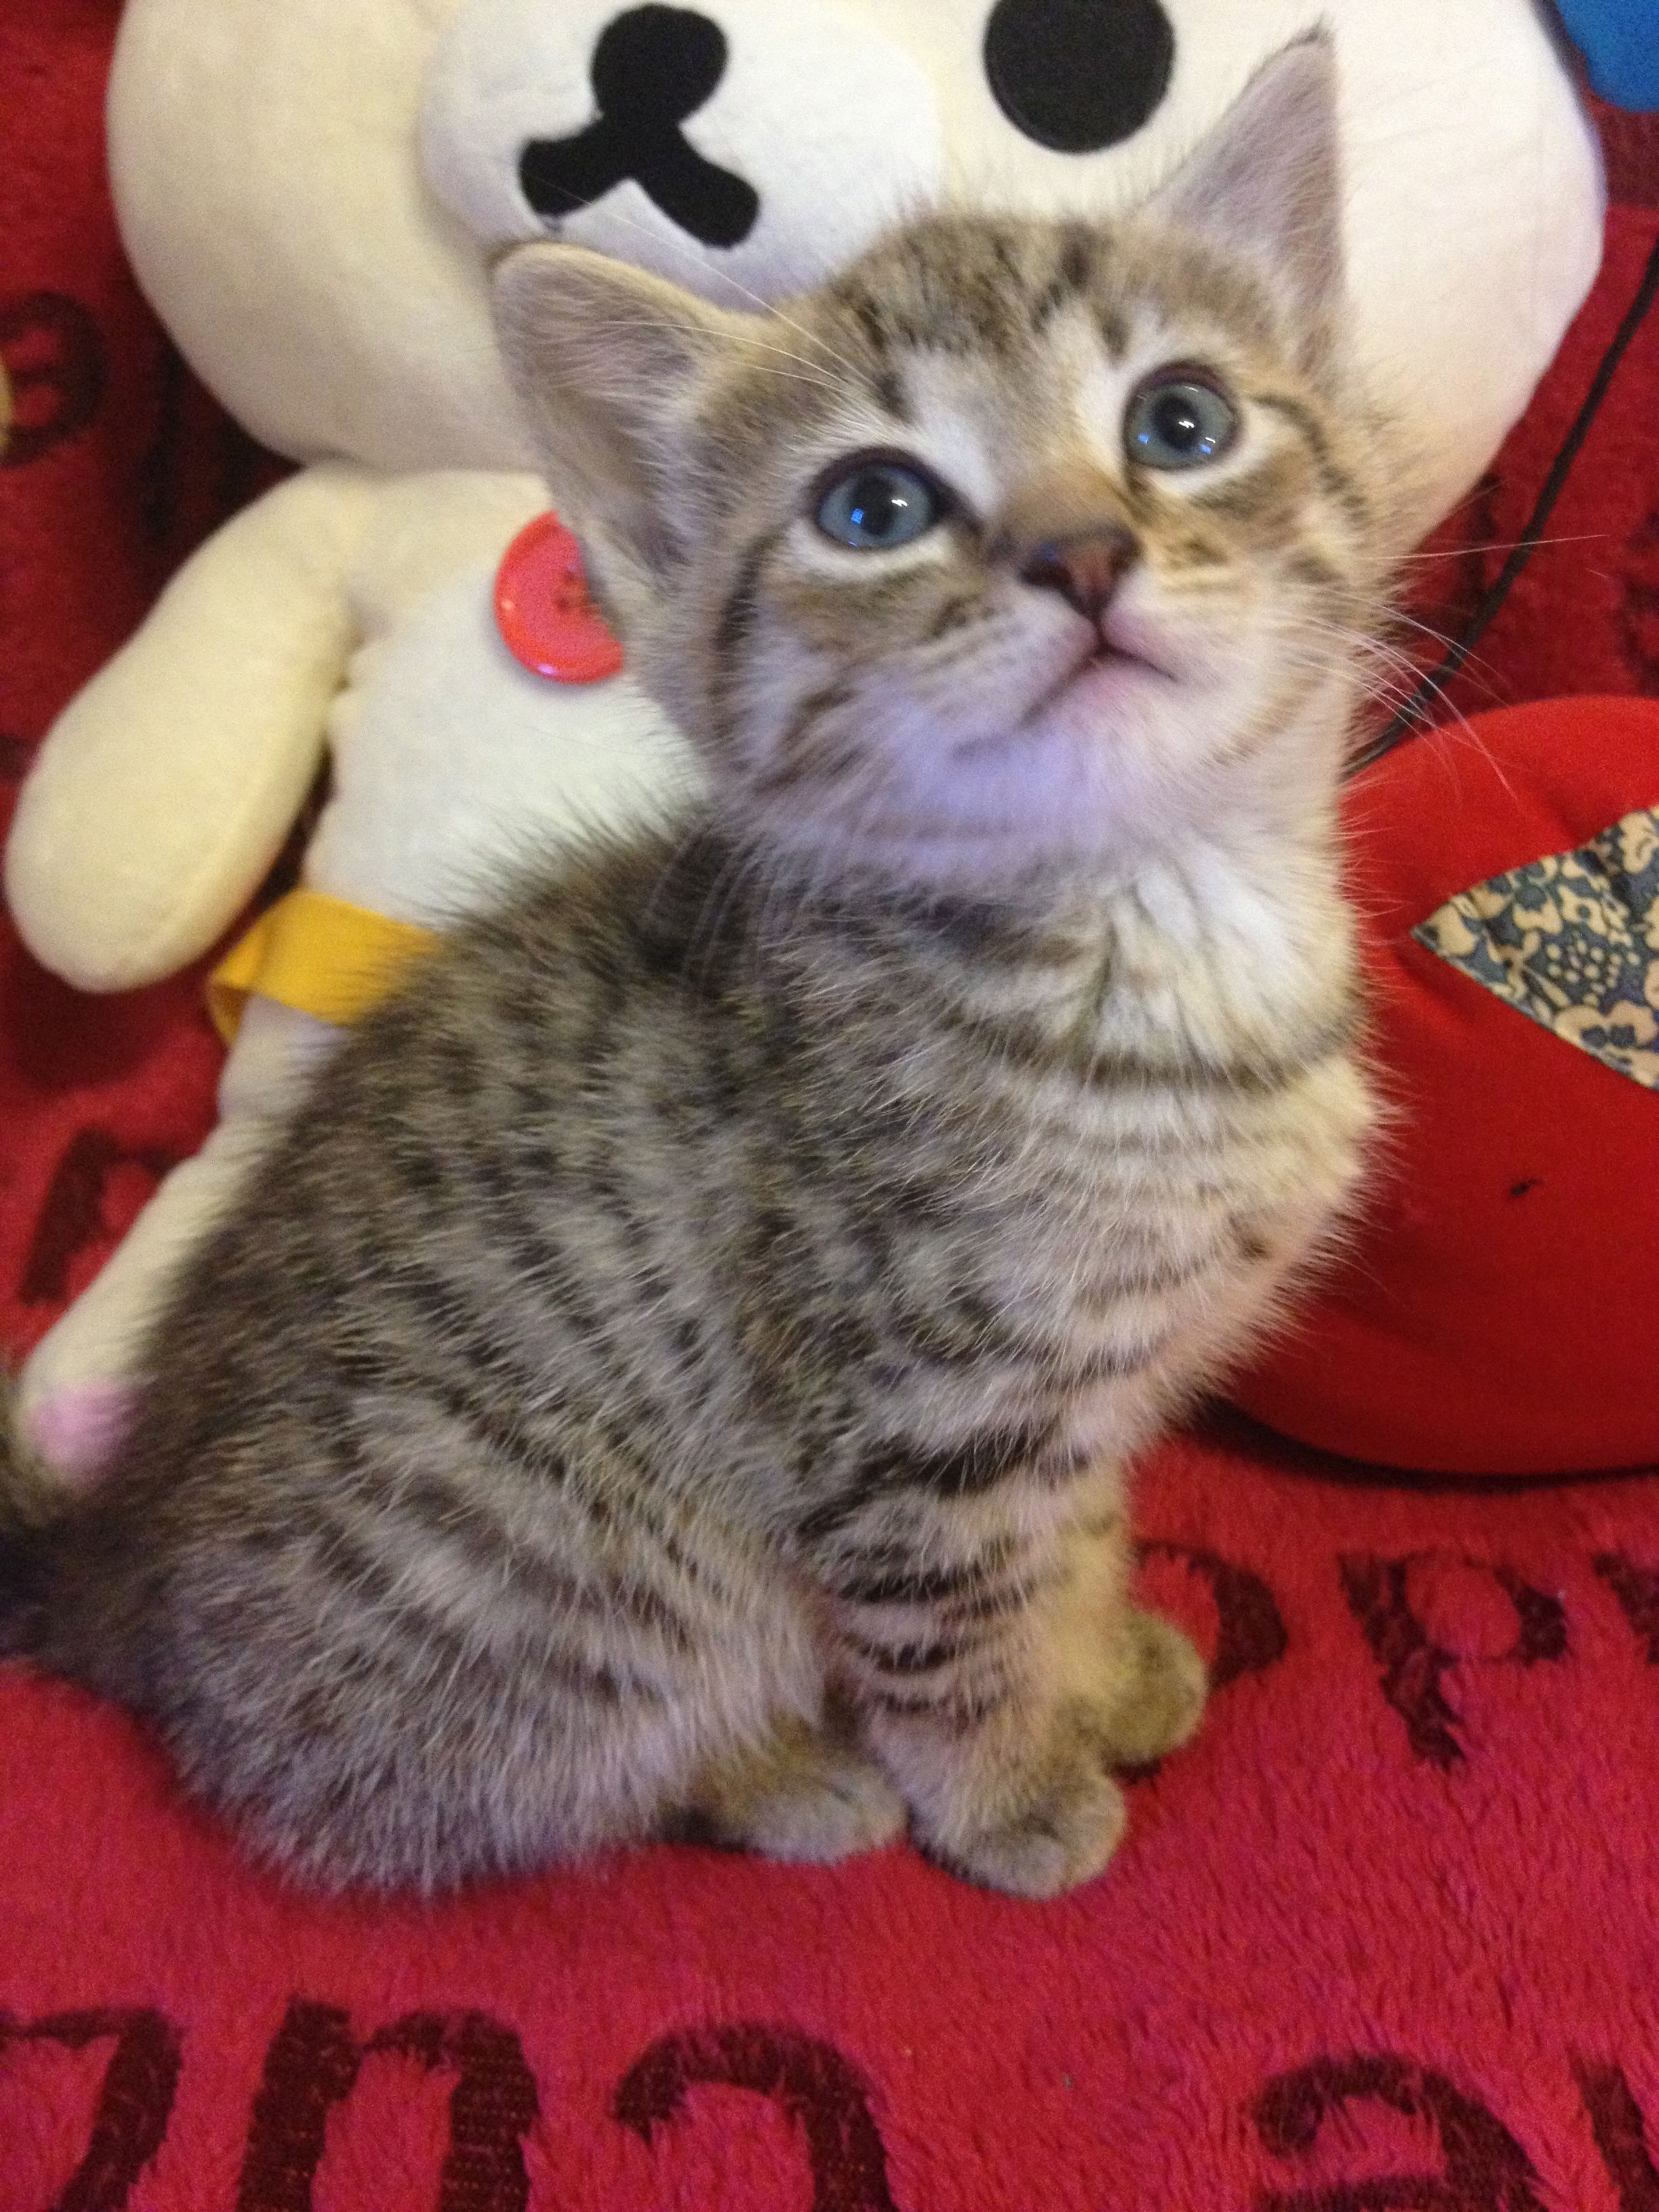 8 Weeks Old Tabby Kitten With Spotted Markings Chats Et Chatons Animaux Mignons Chien Chat